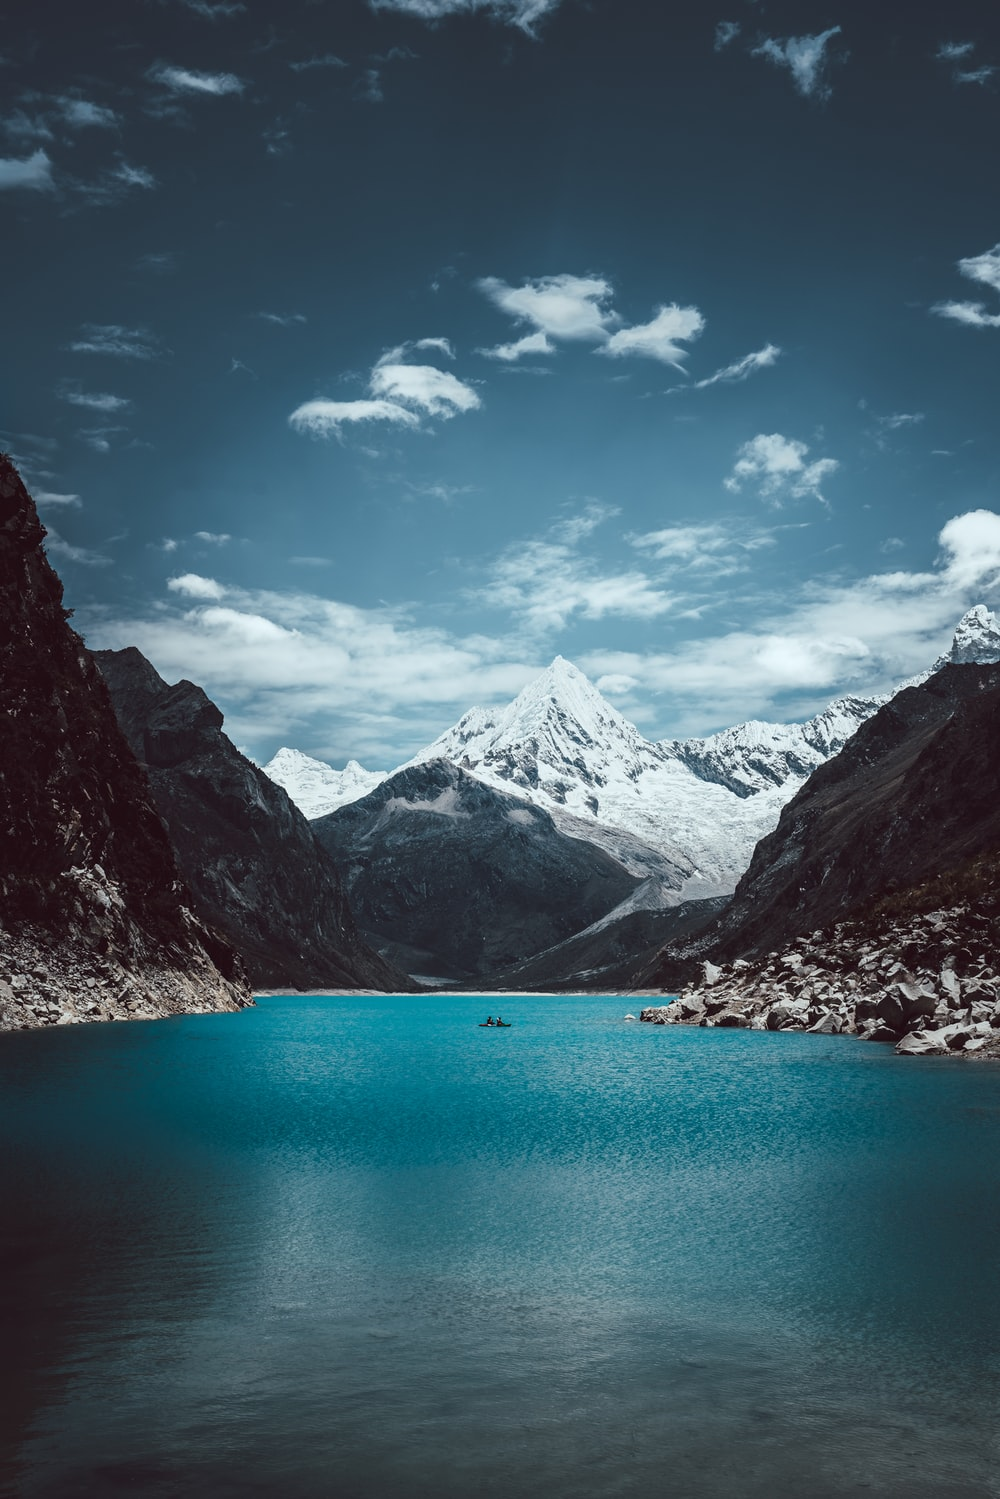 lake in the middle of mountains under blue sky